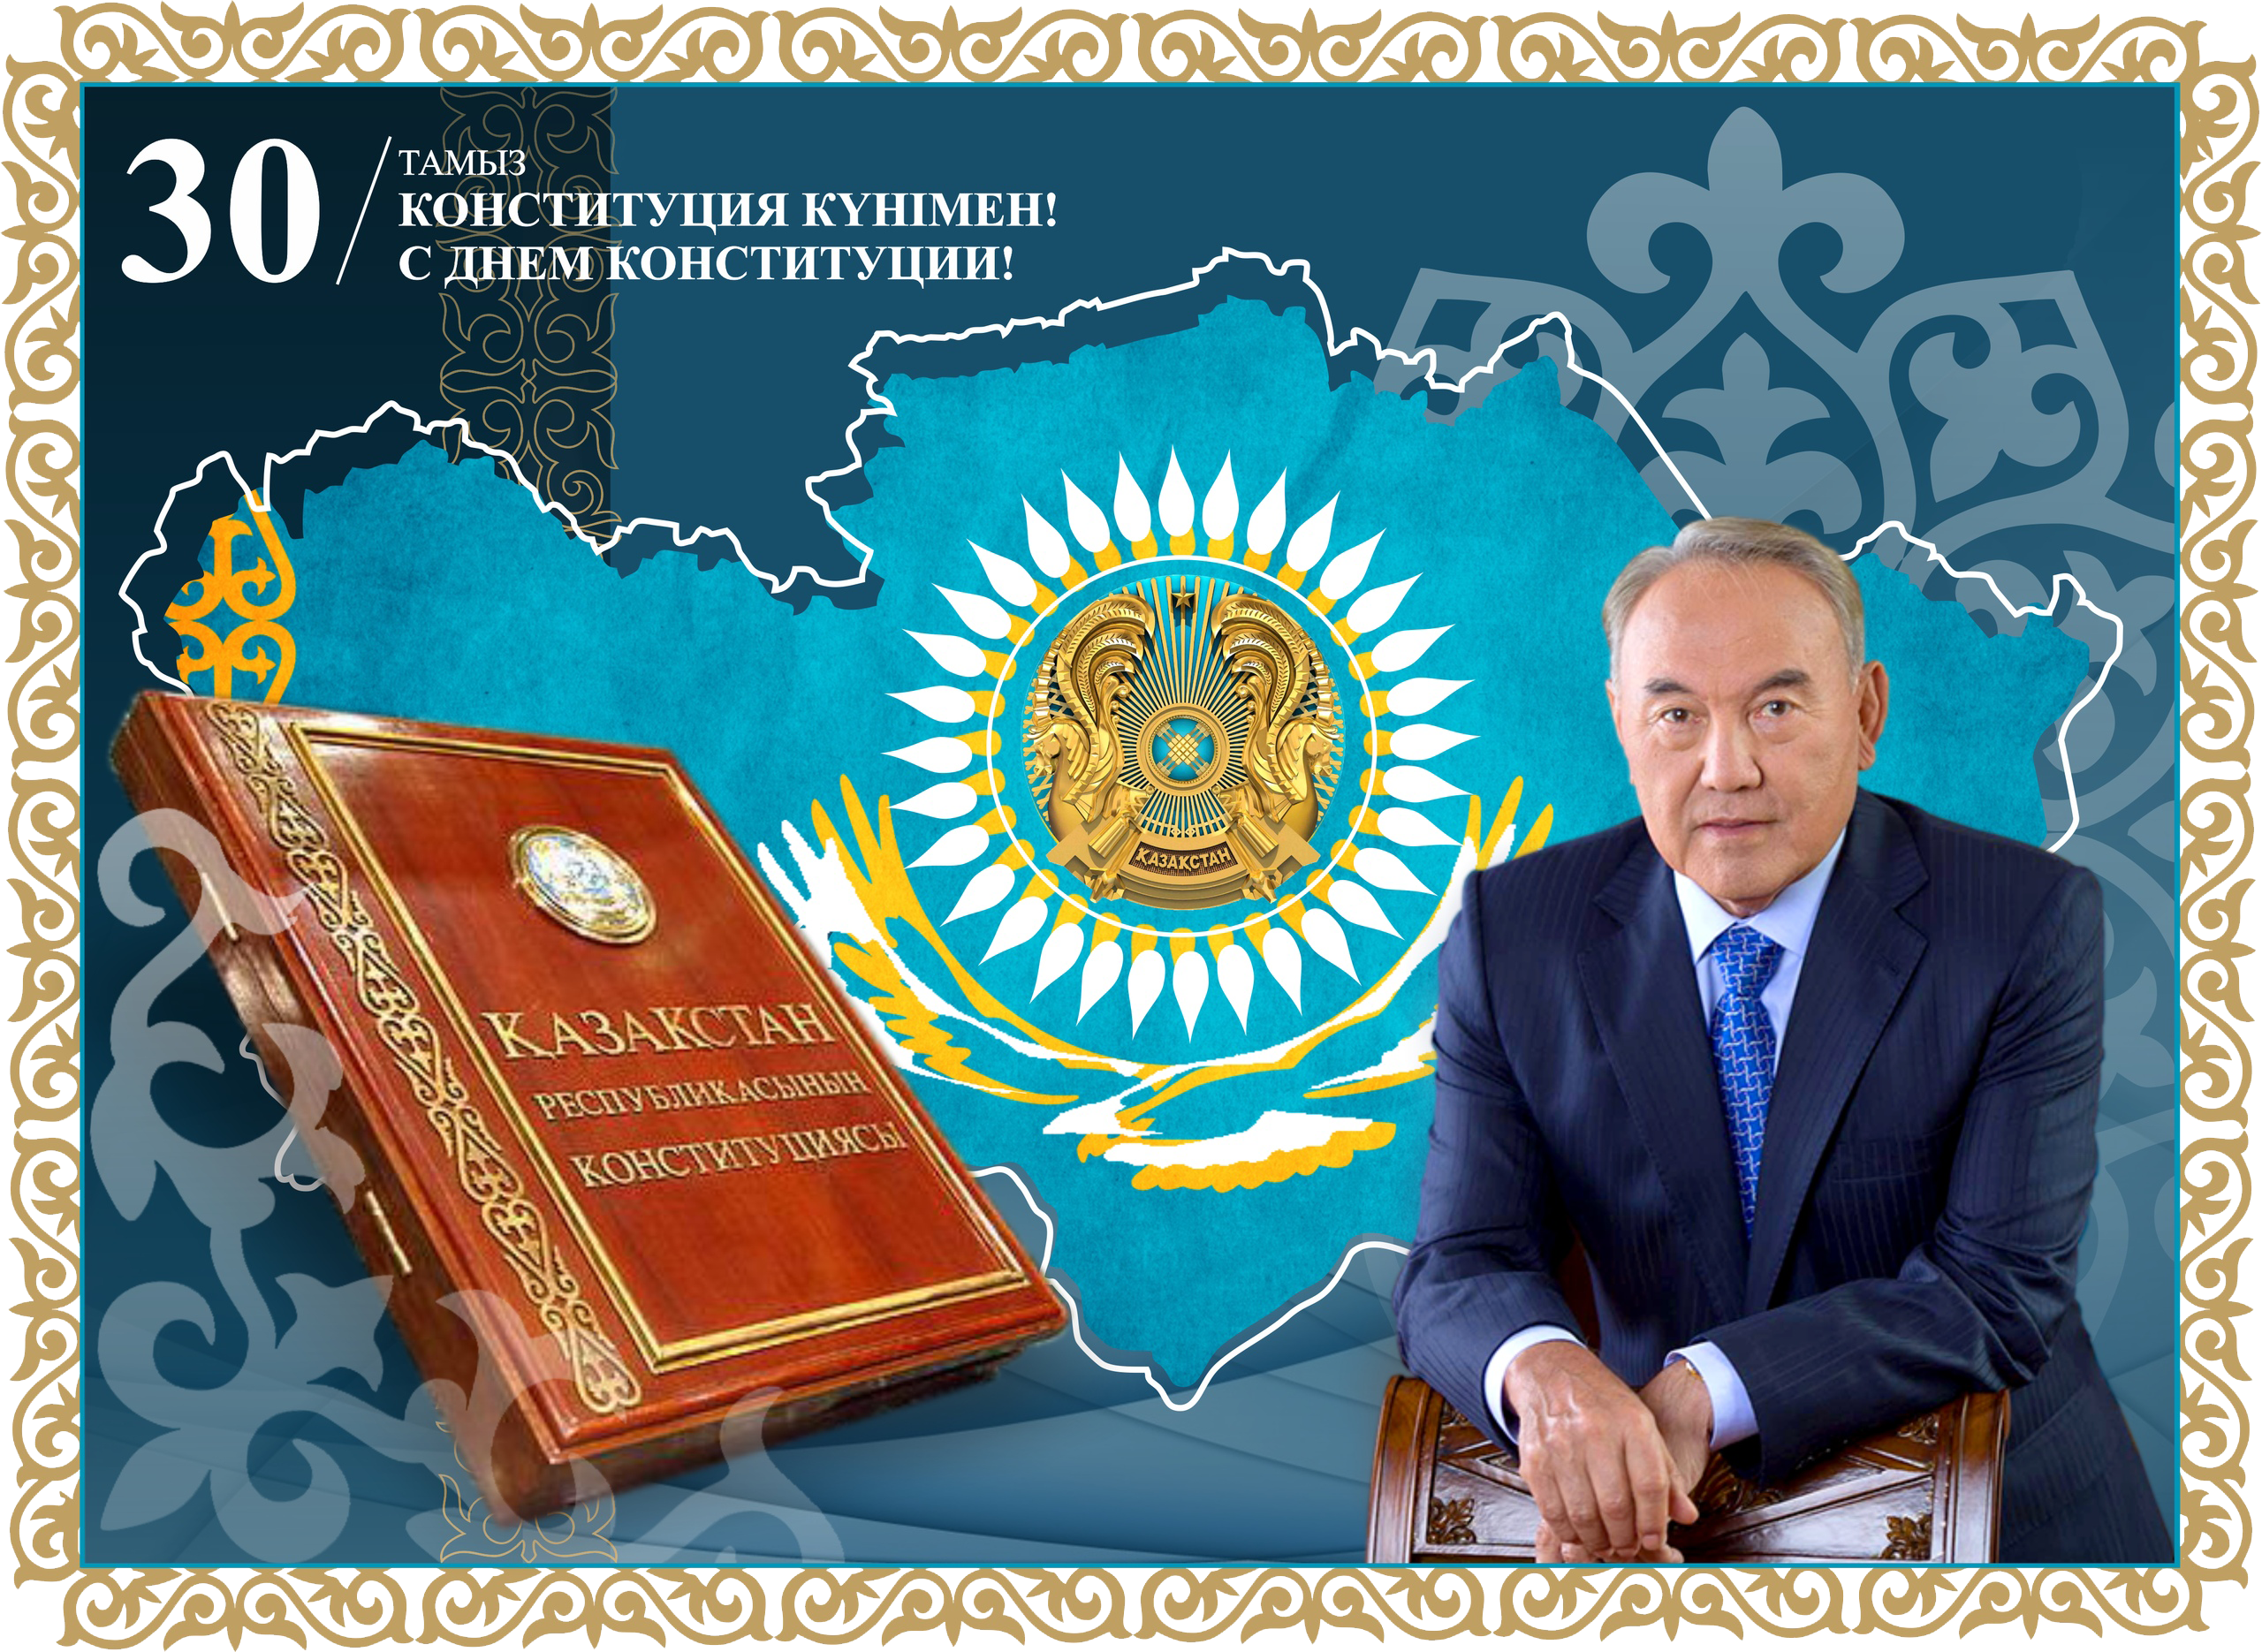 Constitution Day of the Republic of Kazakhstan